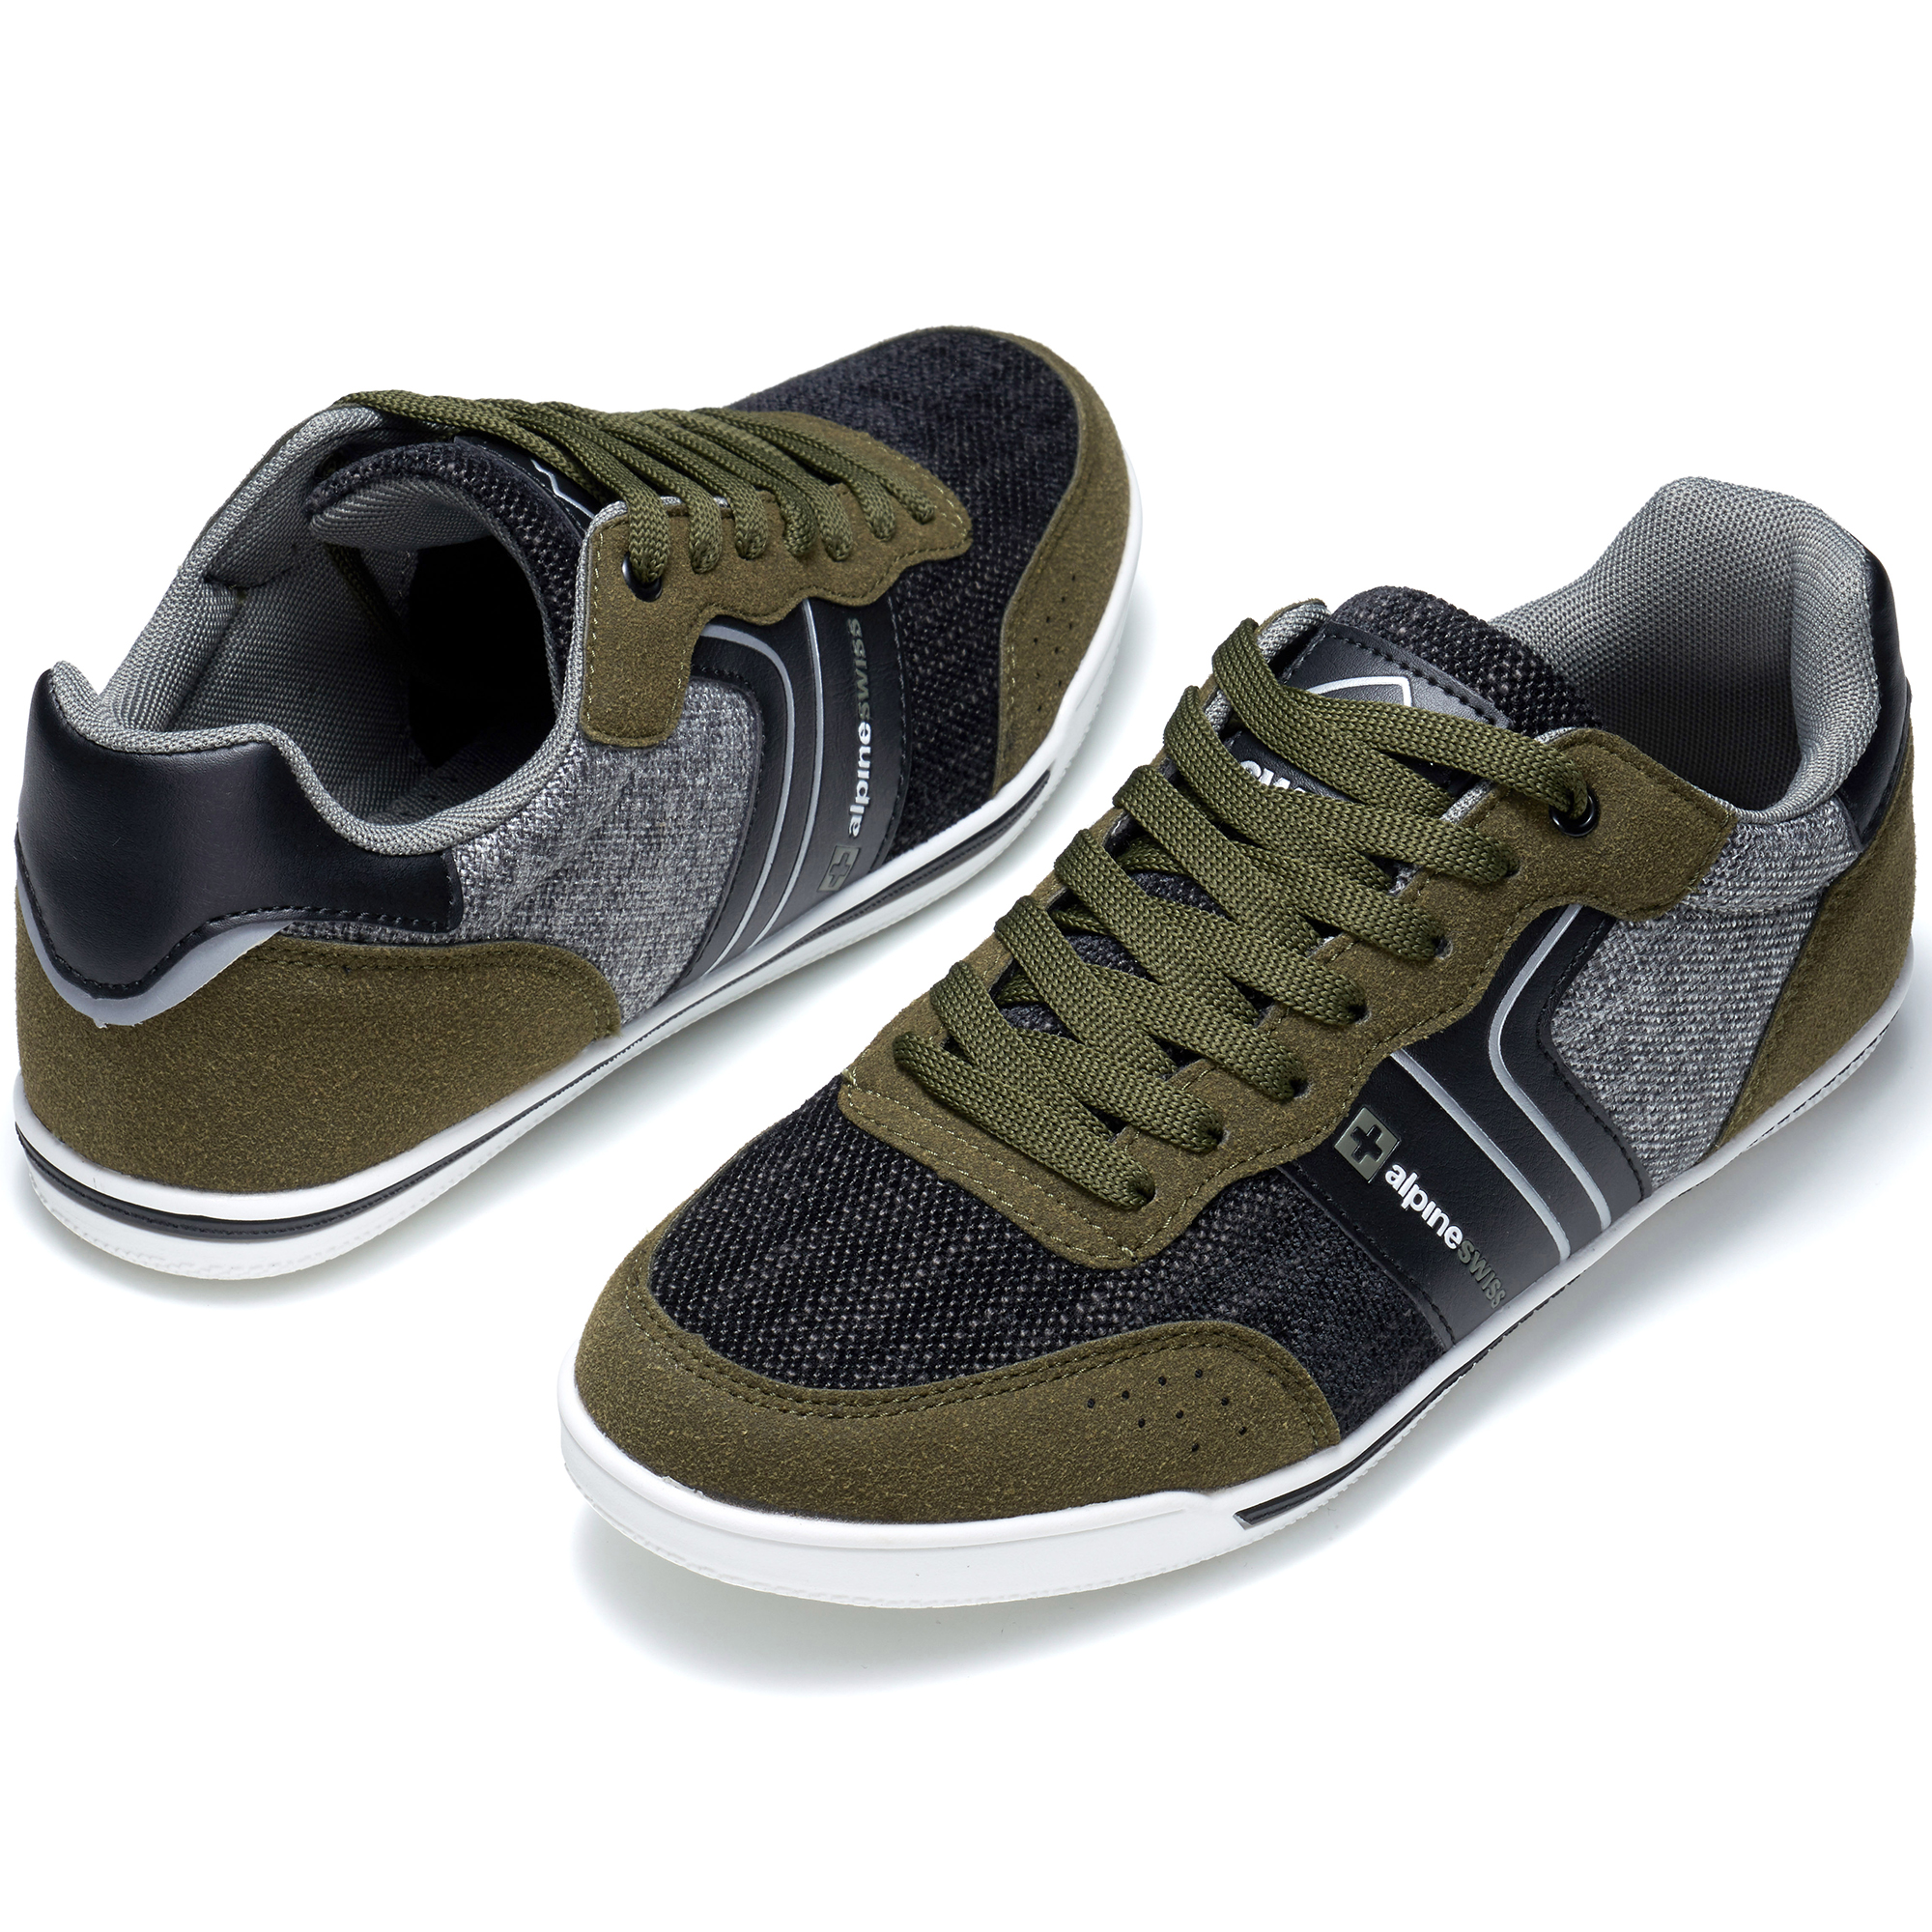 Alpine-Swiss-Liam-Mens-Fashion-Sneakers-Suede-Trim-Low-Top-Lace-Up-Tennis-Shoes thumbnail 42